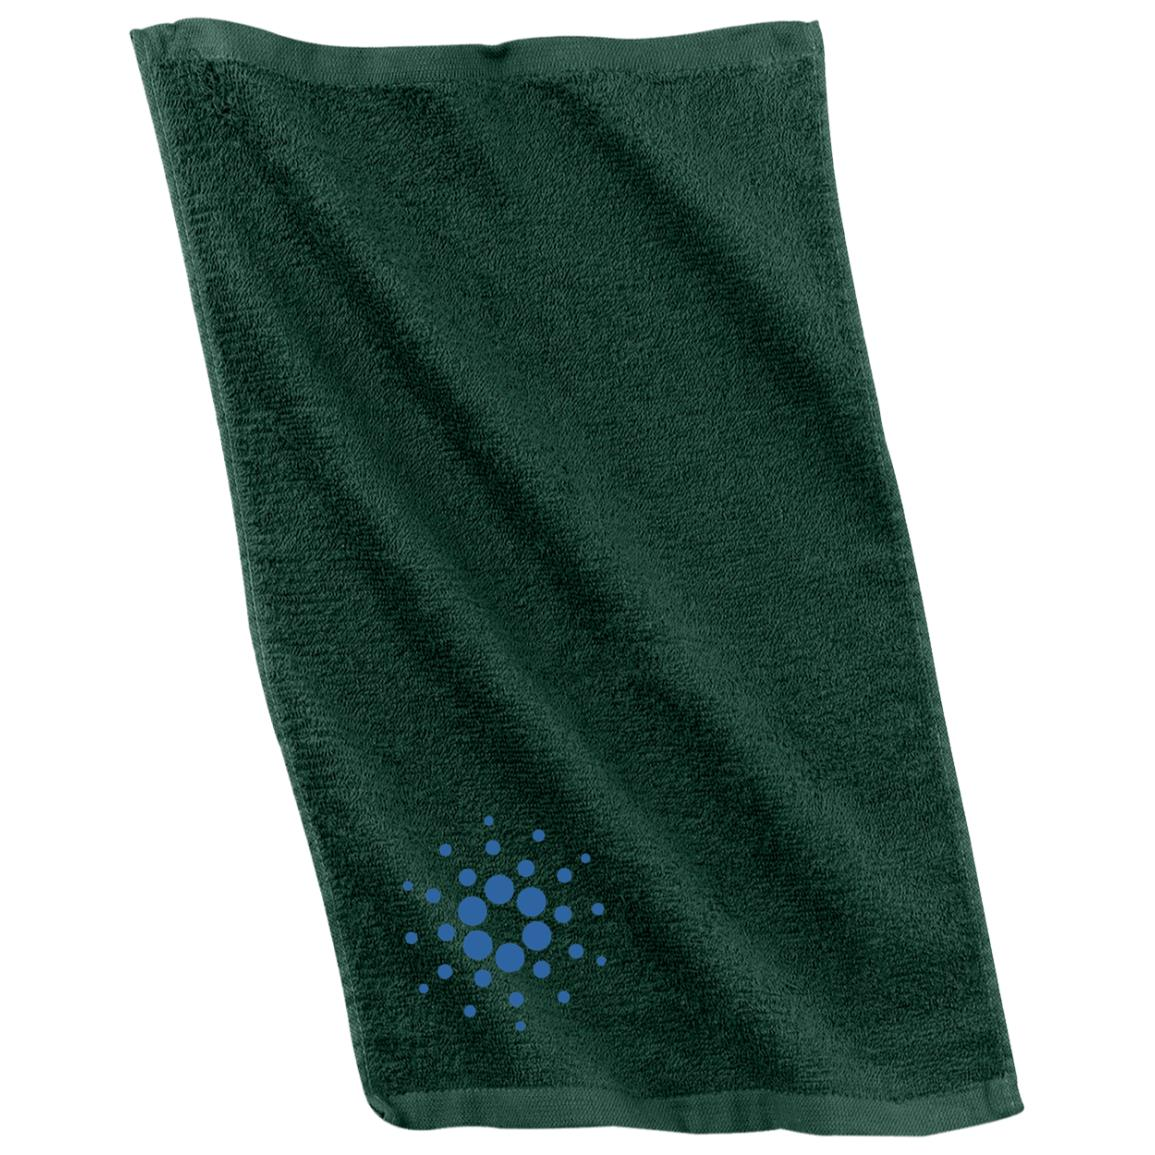 Cardano Rally Towel